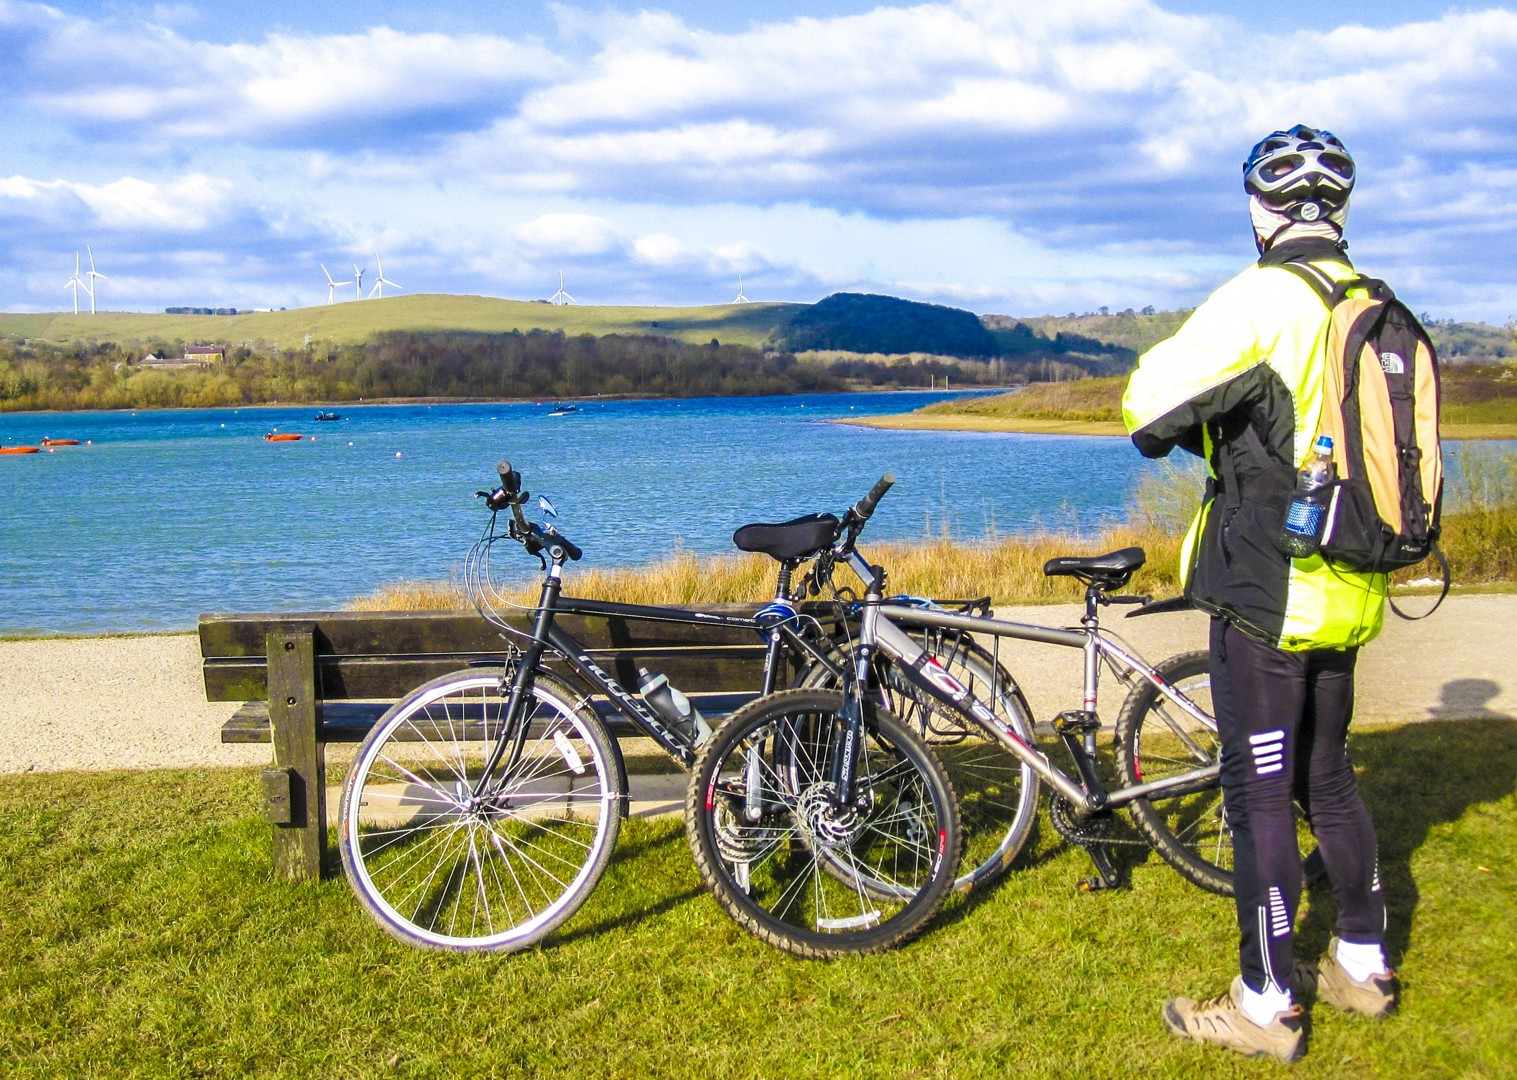 IMG_4453-2.jpg - UK - Derbyshire Dales - Dovedale - Self-Guided Leisure Cycling Holiday - Leisure Cycling